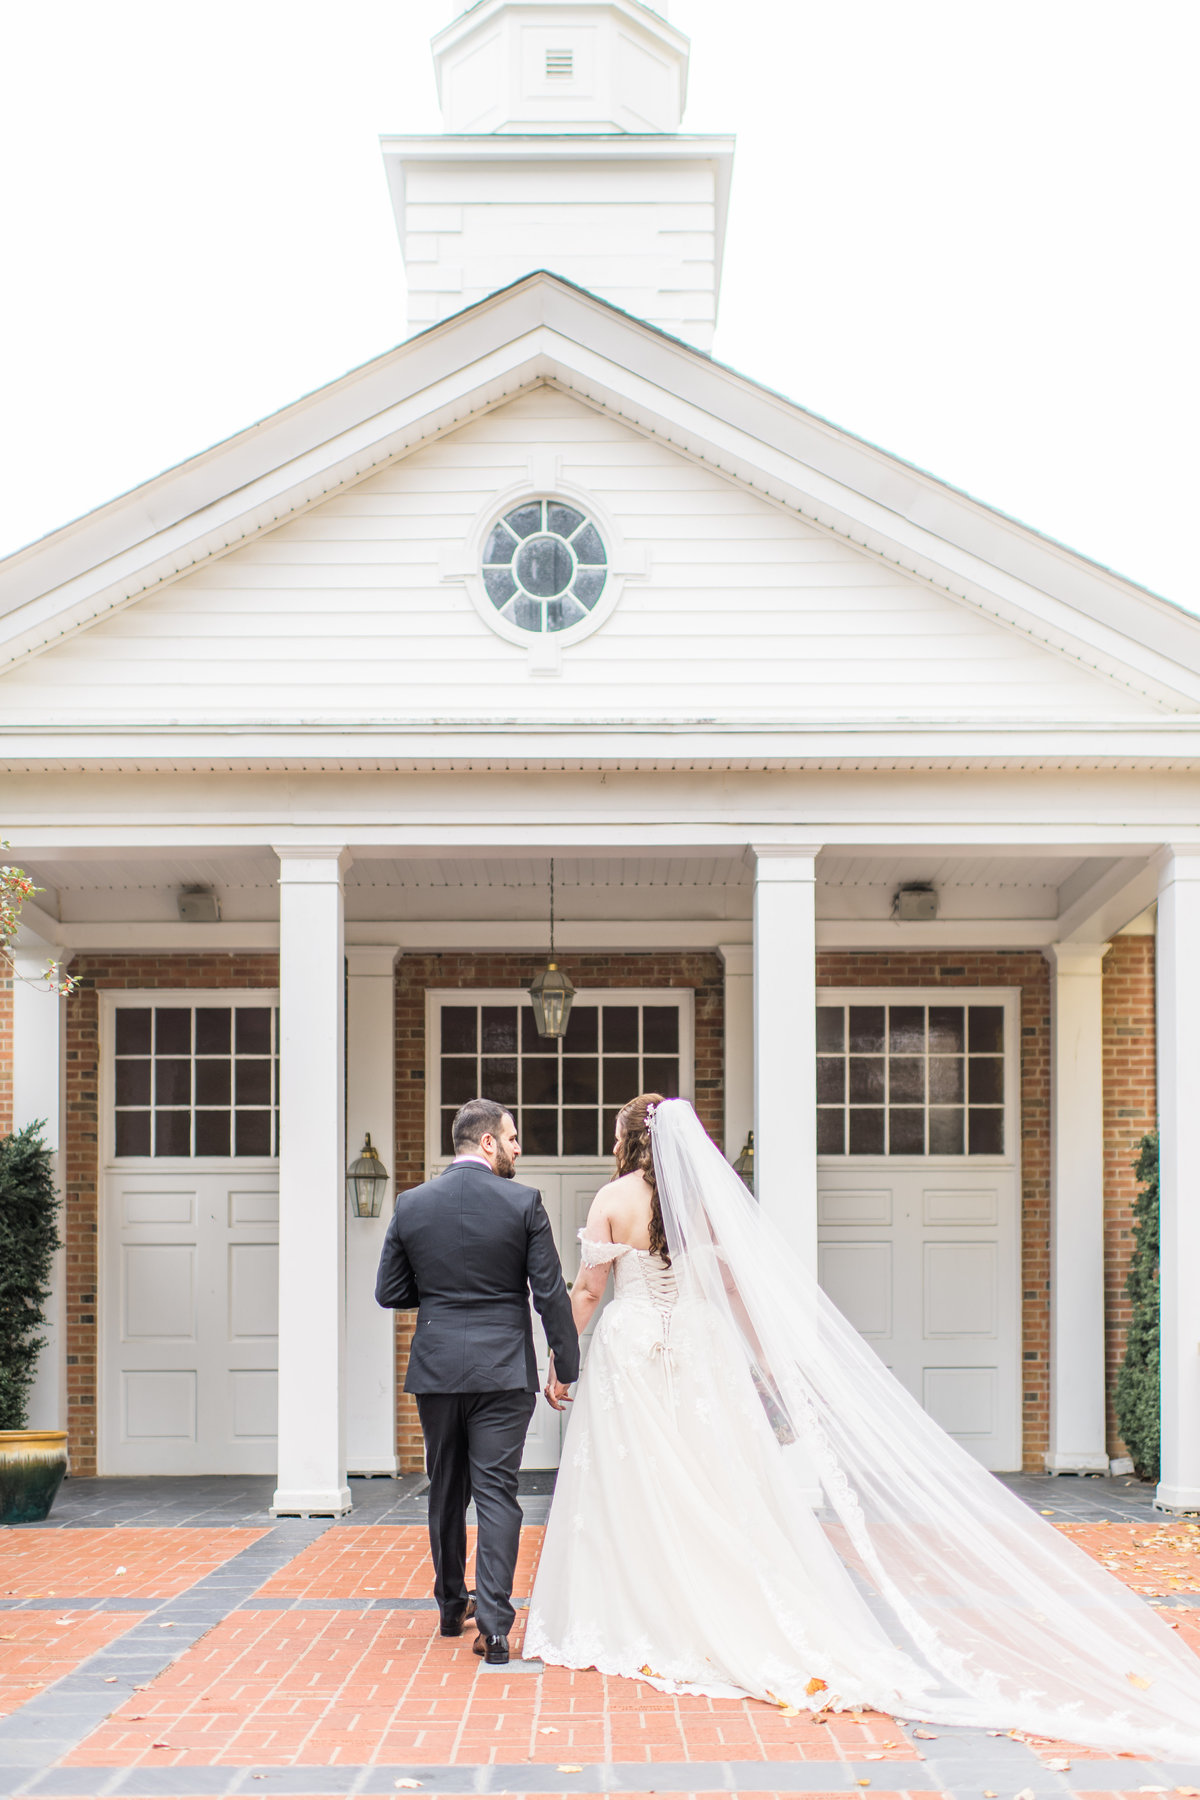 6-anthony-kathryn-great-marsh-estate-bealeton-virginia-wedding-photographer-1